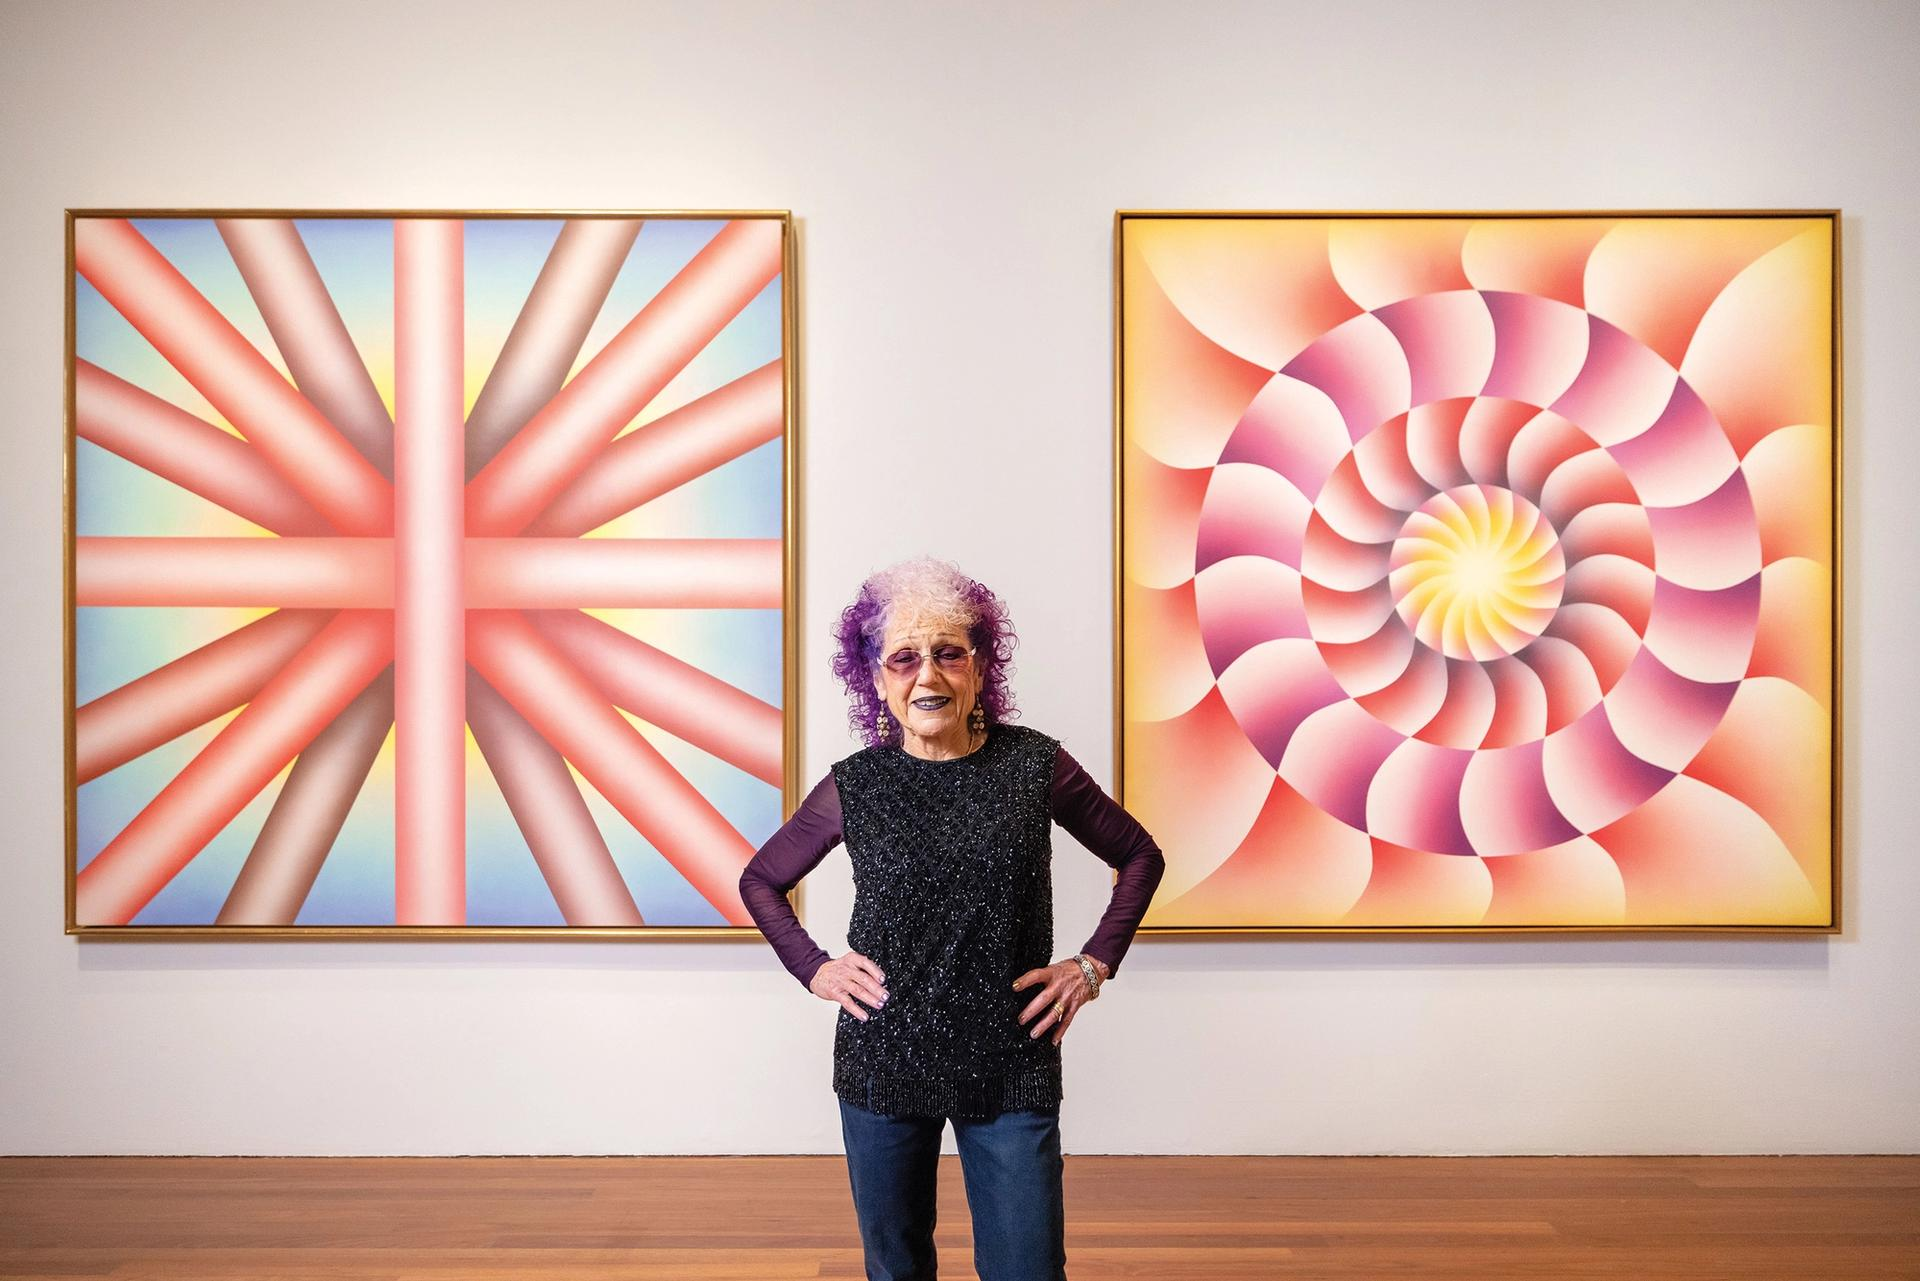 Judy Chicago at her retrospective at the de Young Museum  Photo: Gary Sexton; Judy Chicago/Artists Rights Society (ARS), New York/DACS 2021